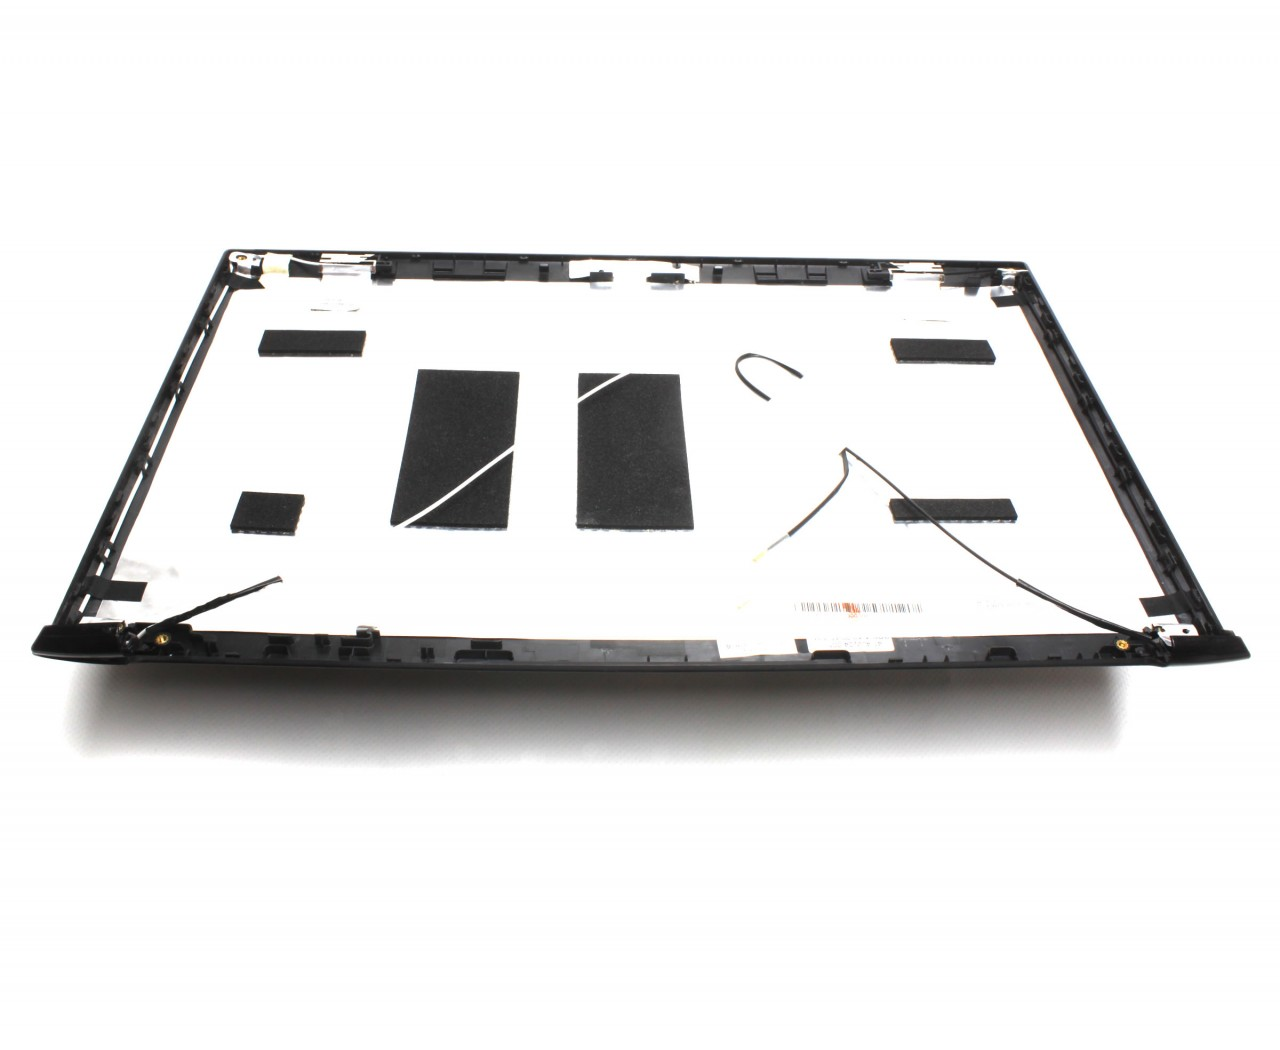 Capac Display BackCover IBM Lenovo B560 Carcasa Display imagine powerlaptop.ro 2021